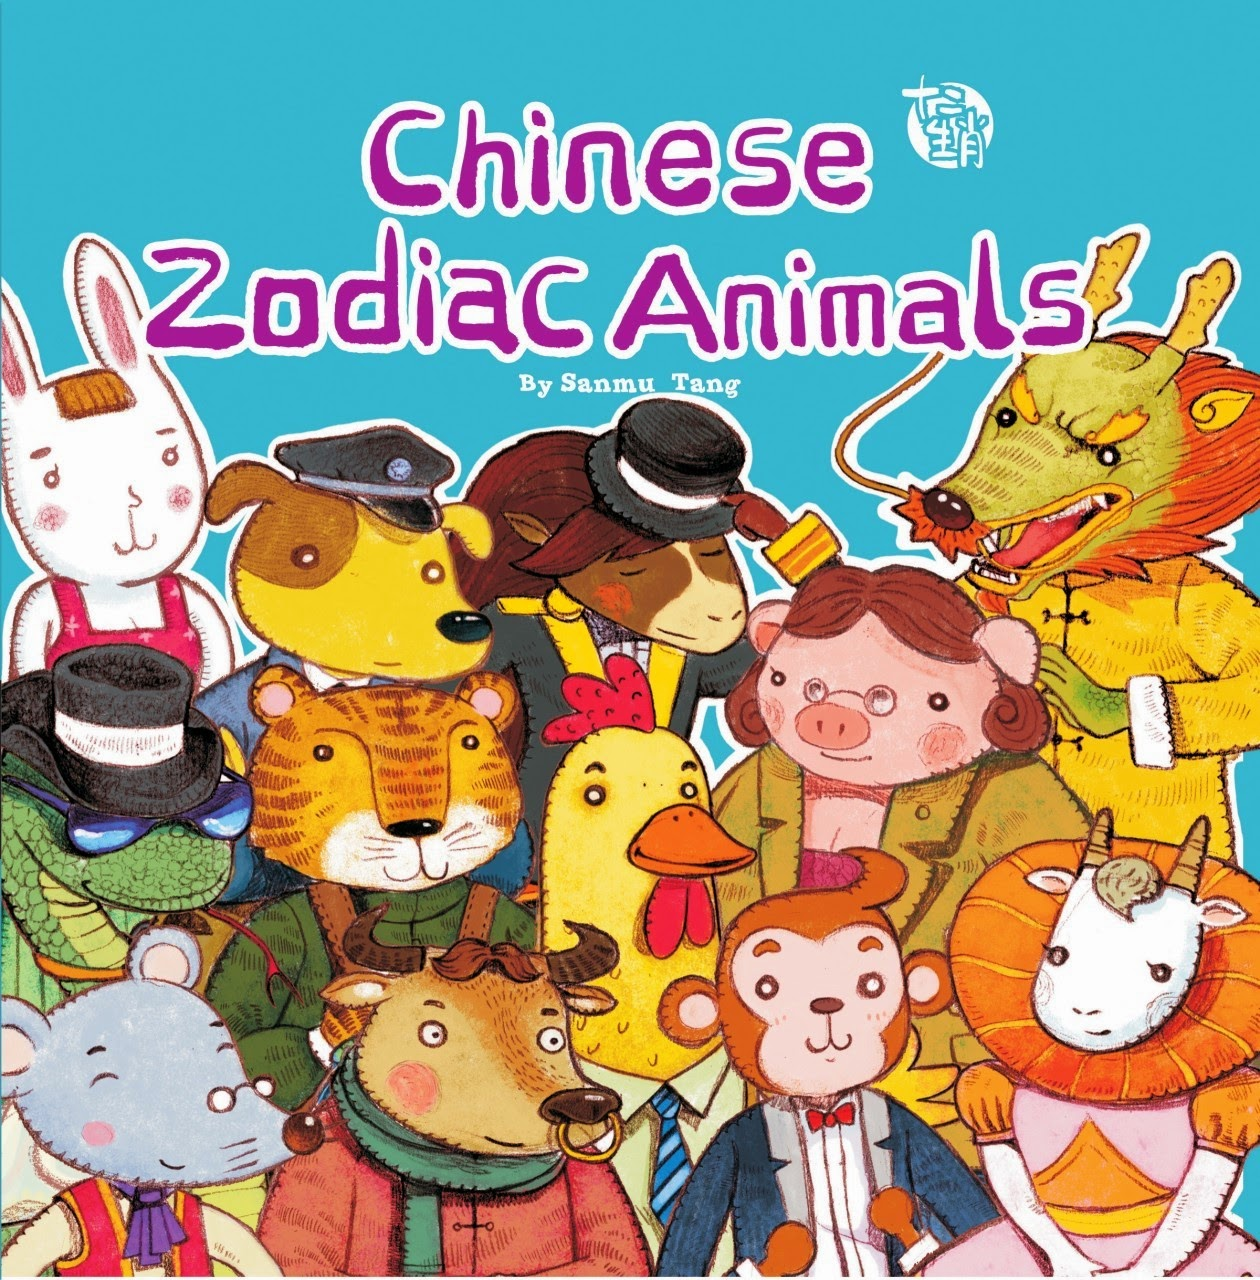 http://www.tuttlepublishing.com/books-by-country/chinese-zodiac-animals